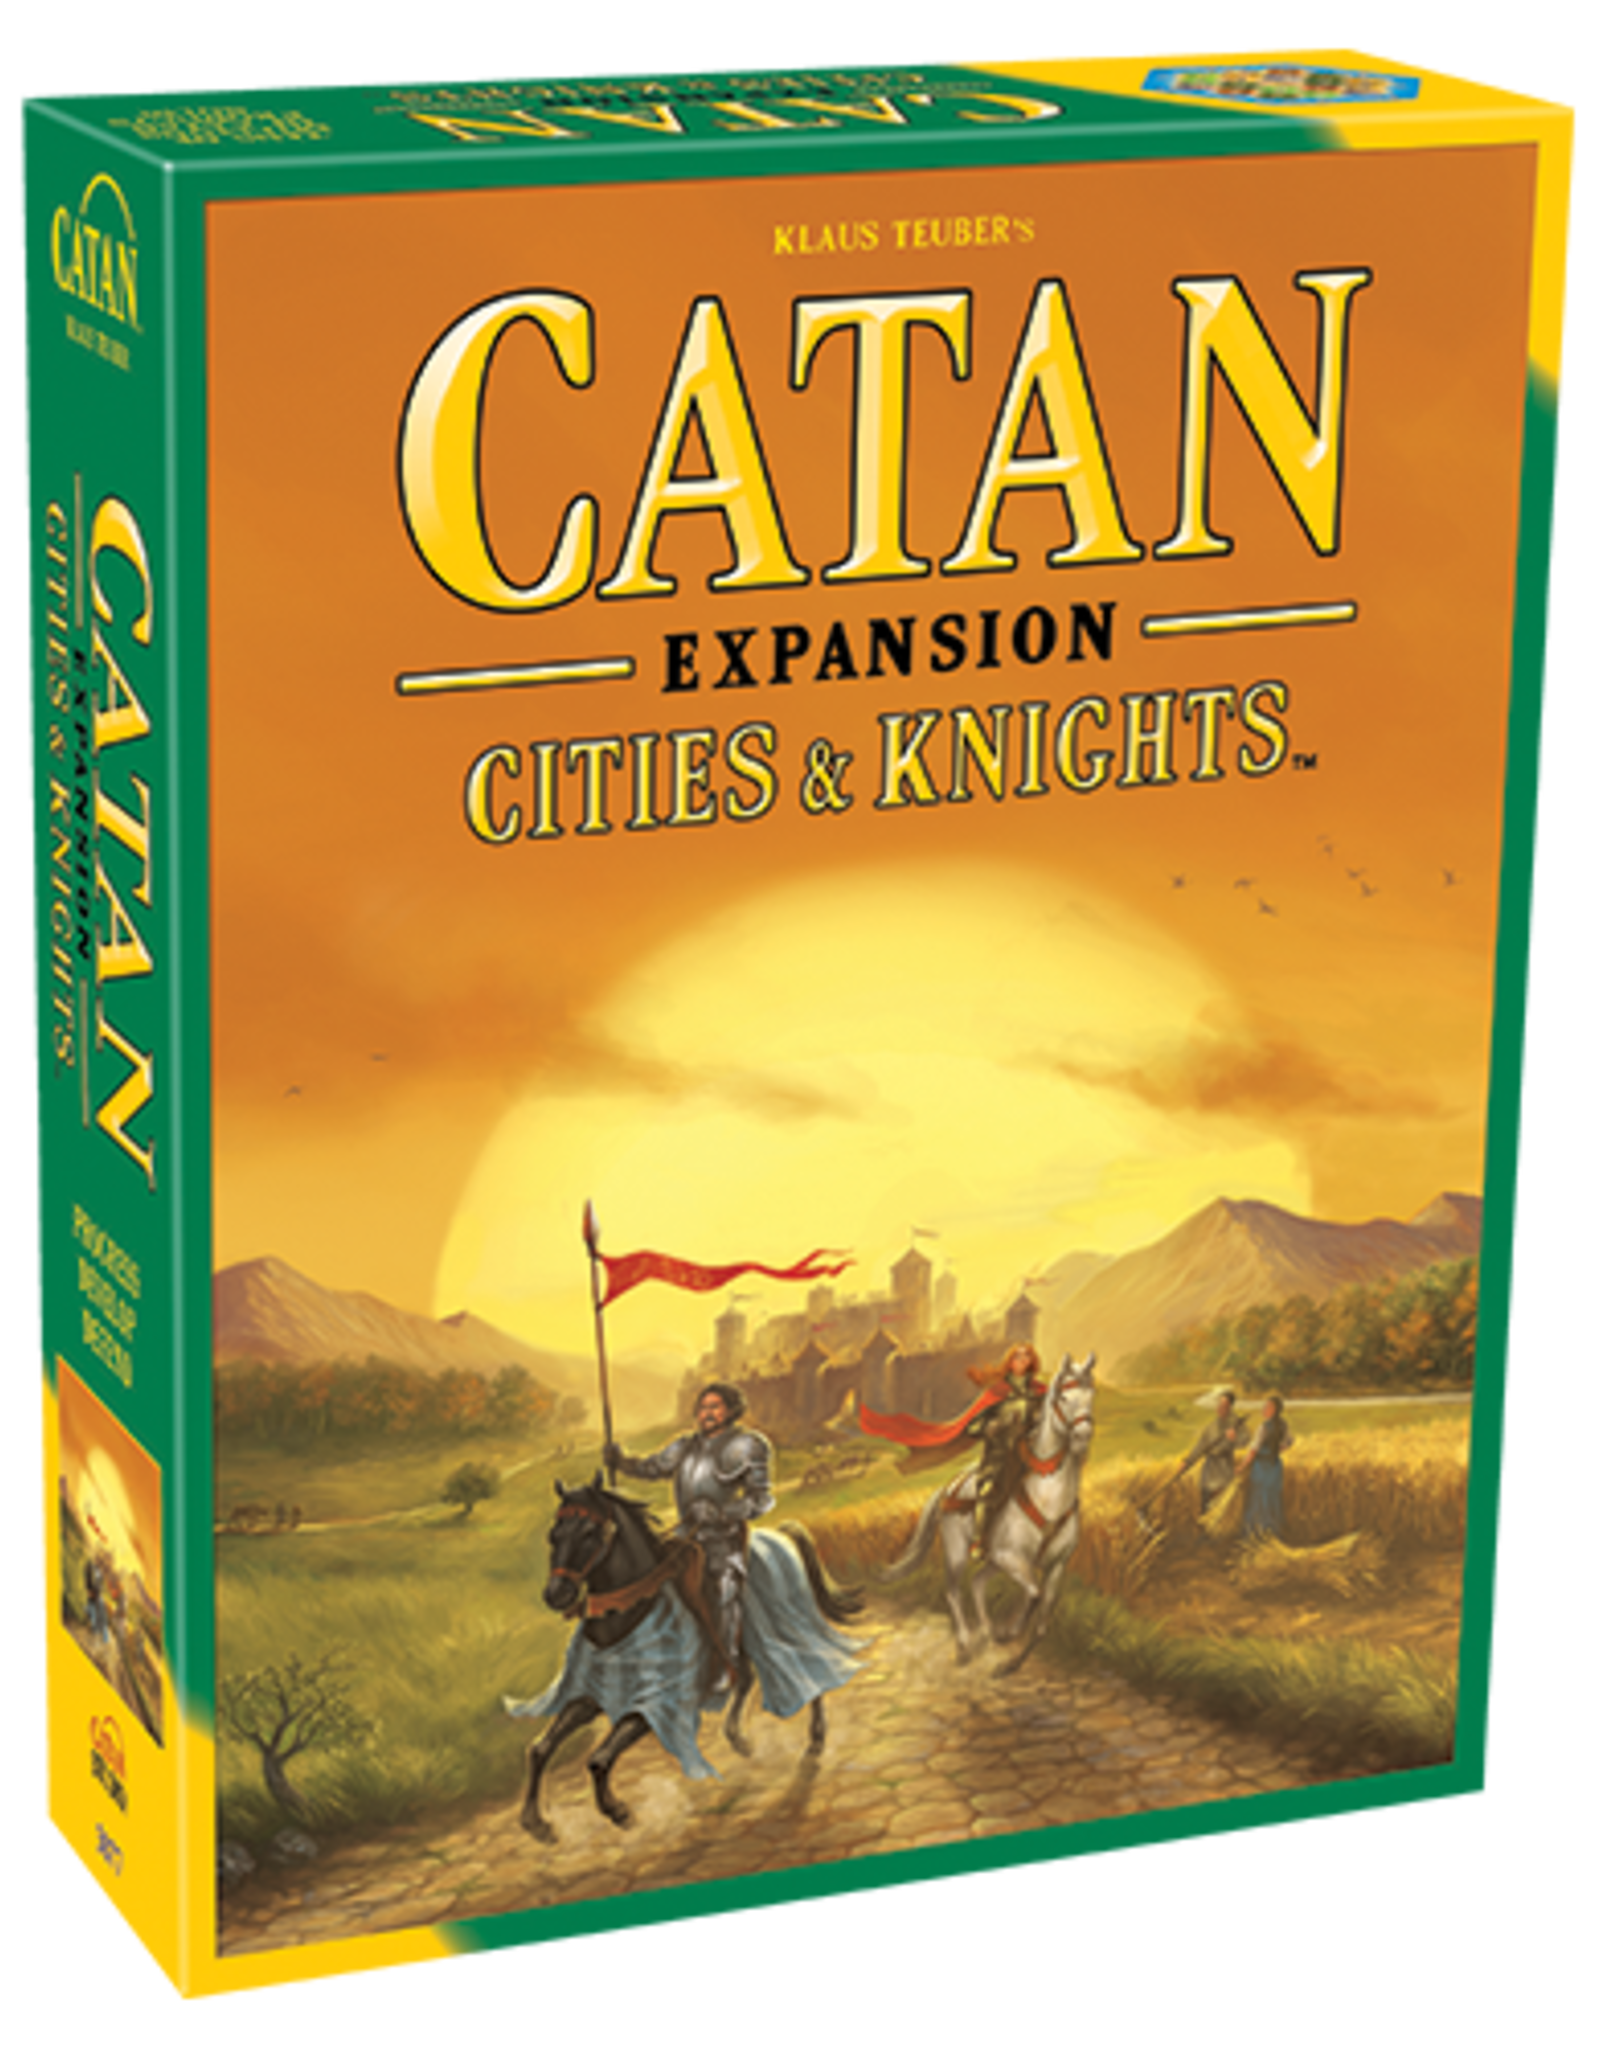 Catan Studios Catan: Cities and Knights Game Expansion